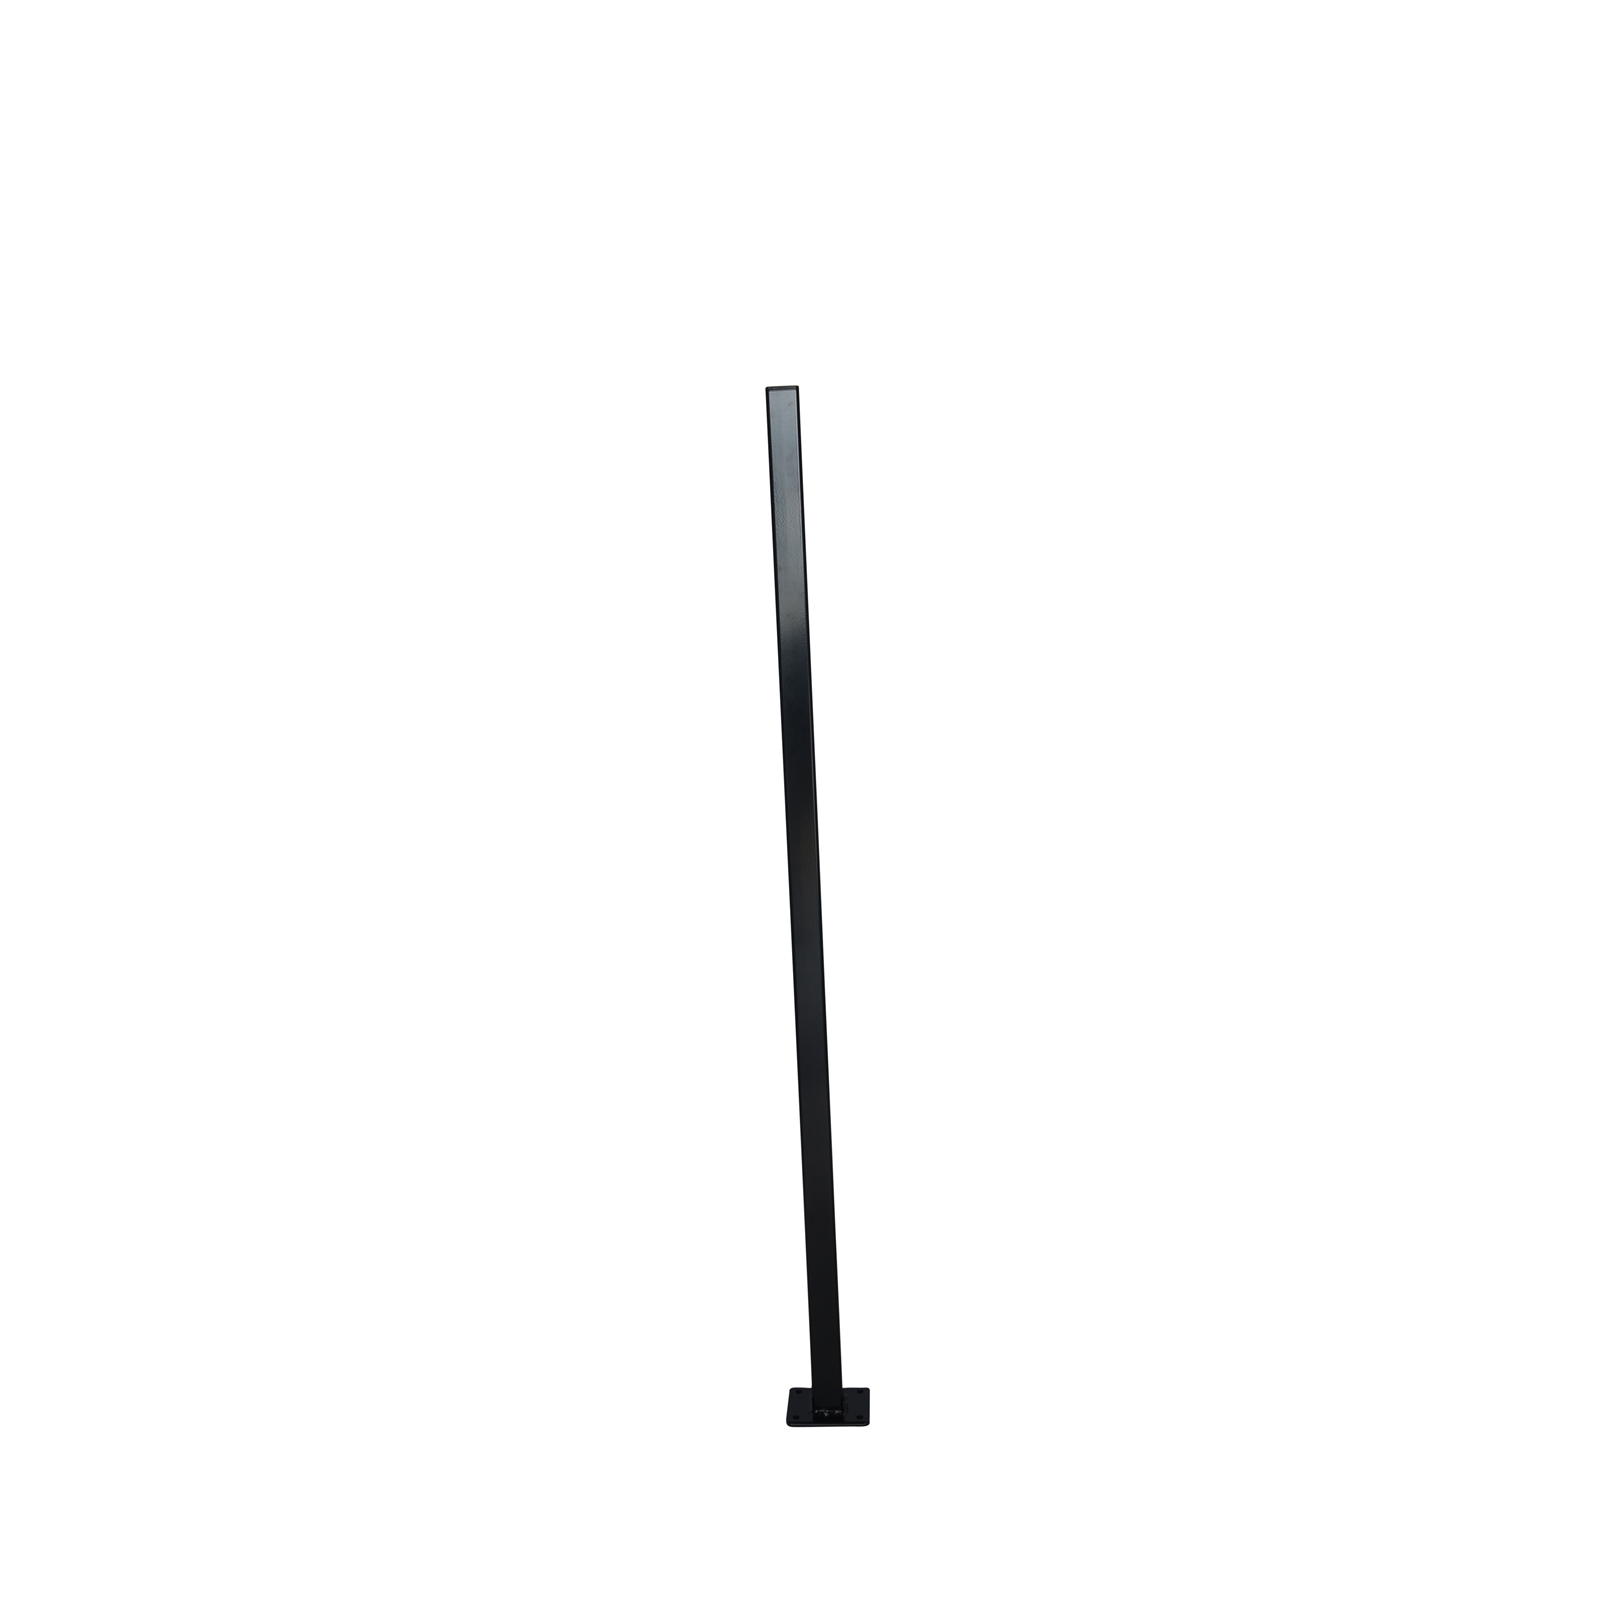 Protector Aluminium 50 x 50 x 1000mm Black Flanged Fence Post With Cap